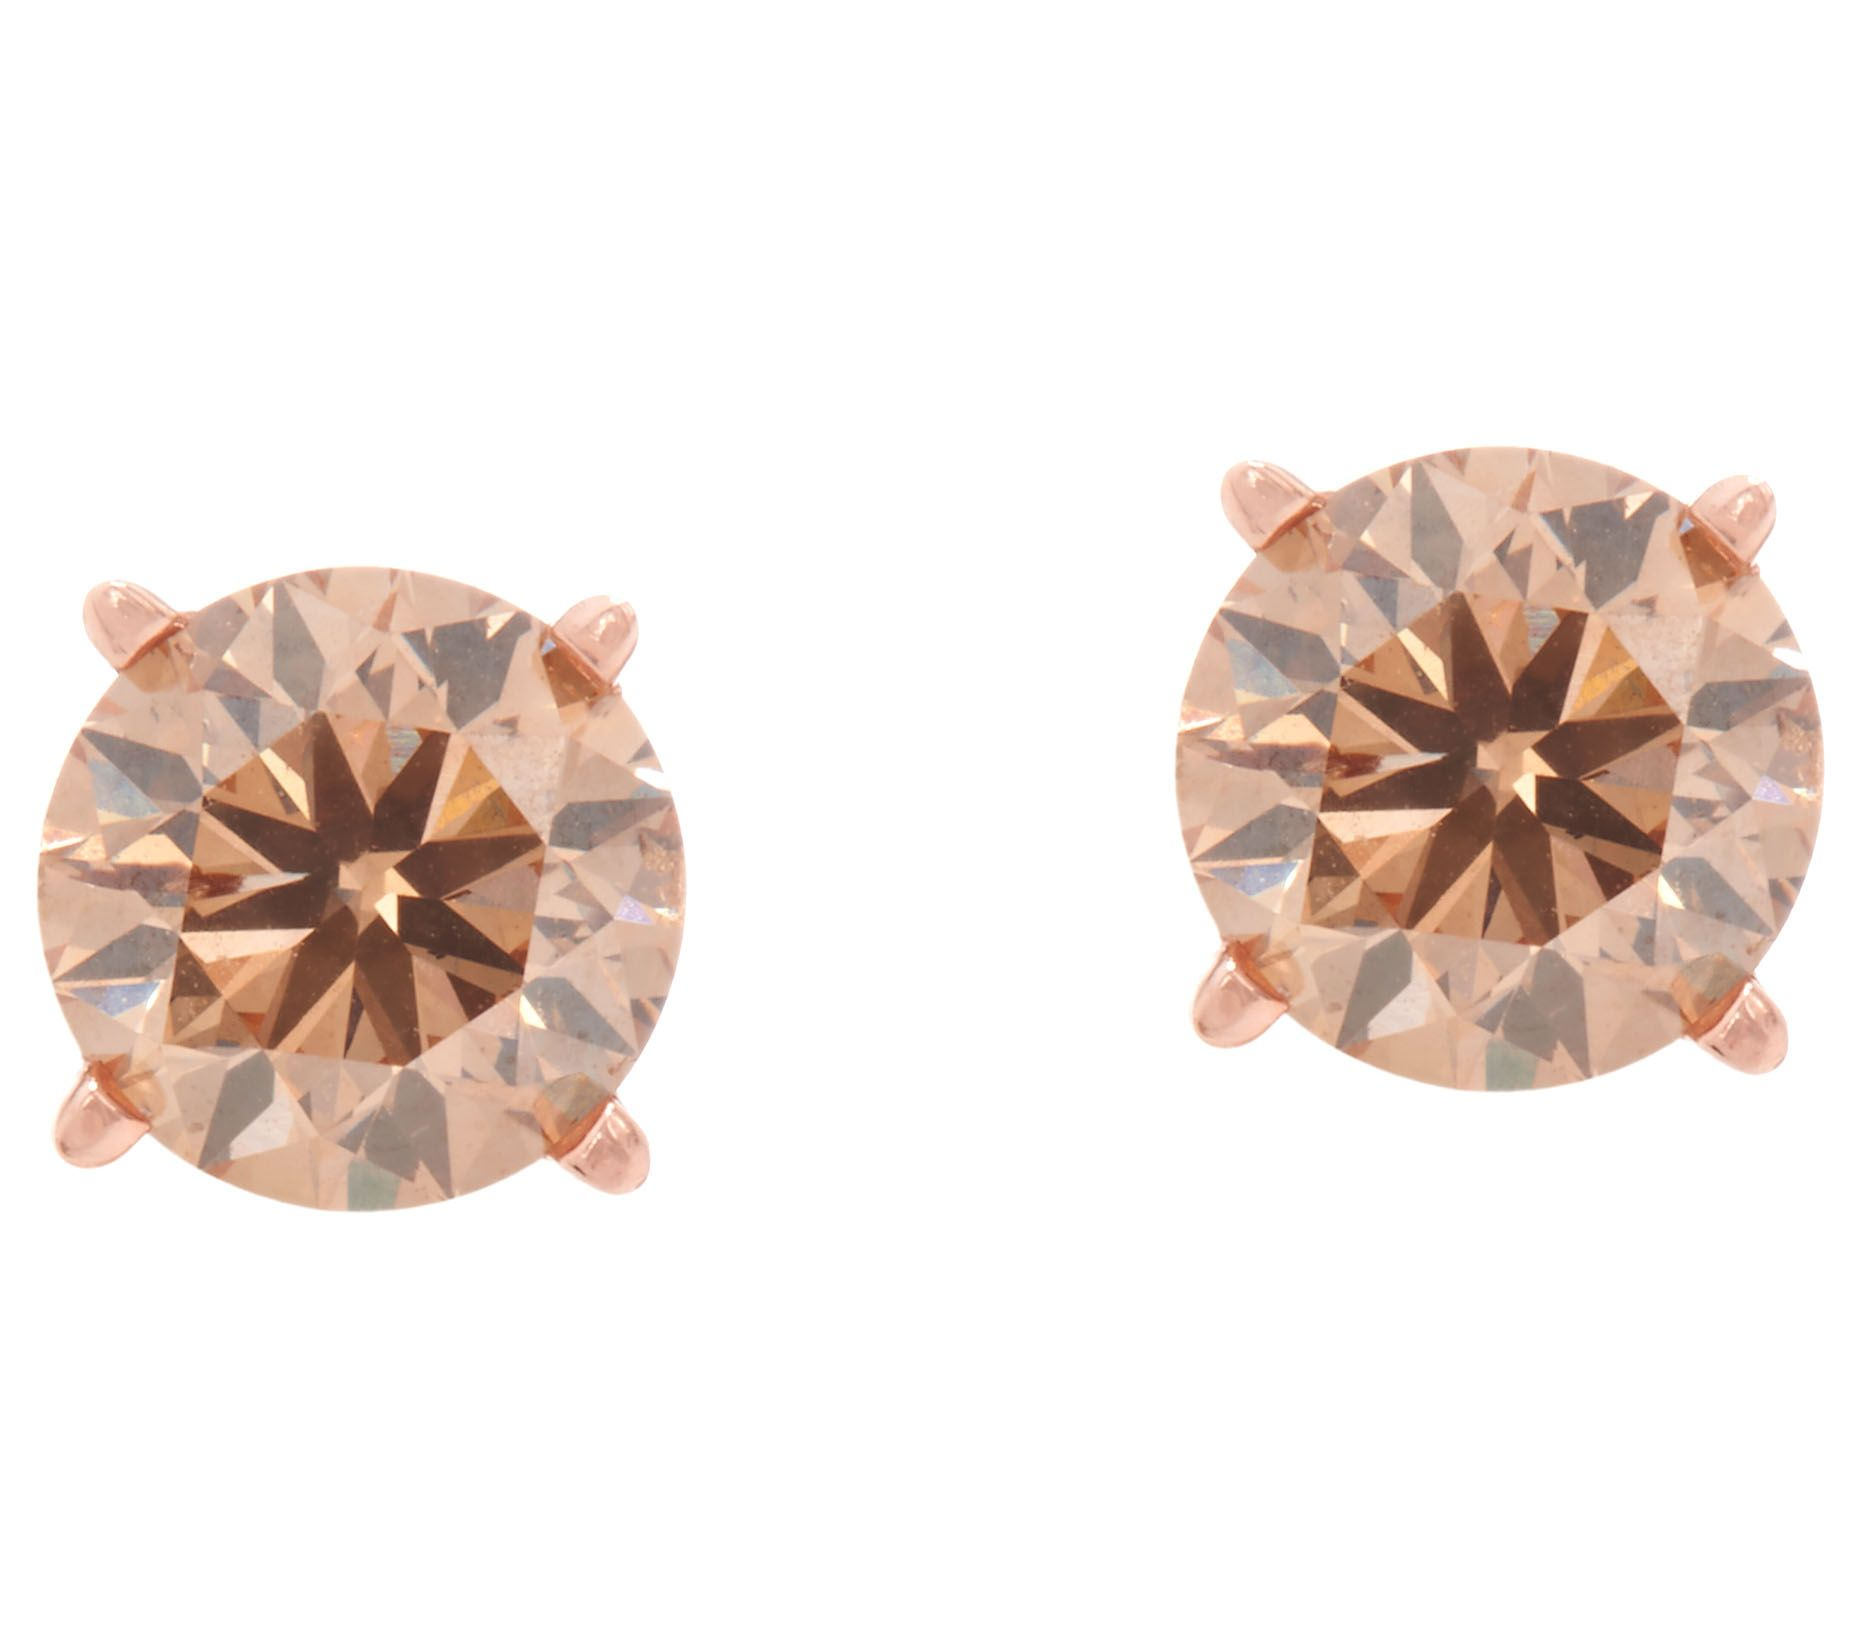 goldsmiths gold earrings brown collection model white rose diamond and on stud mccaul